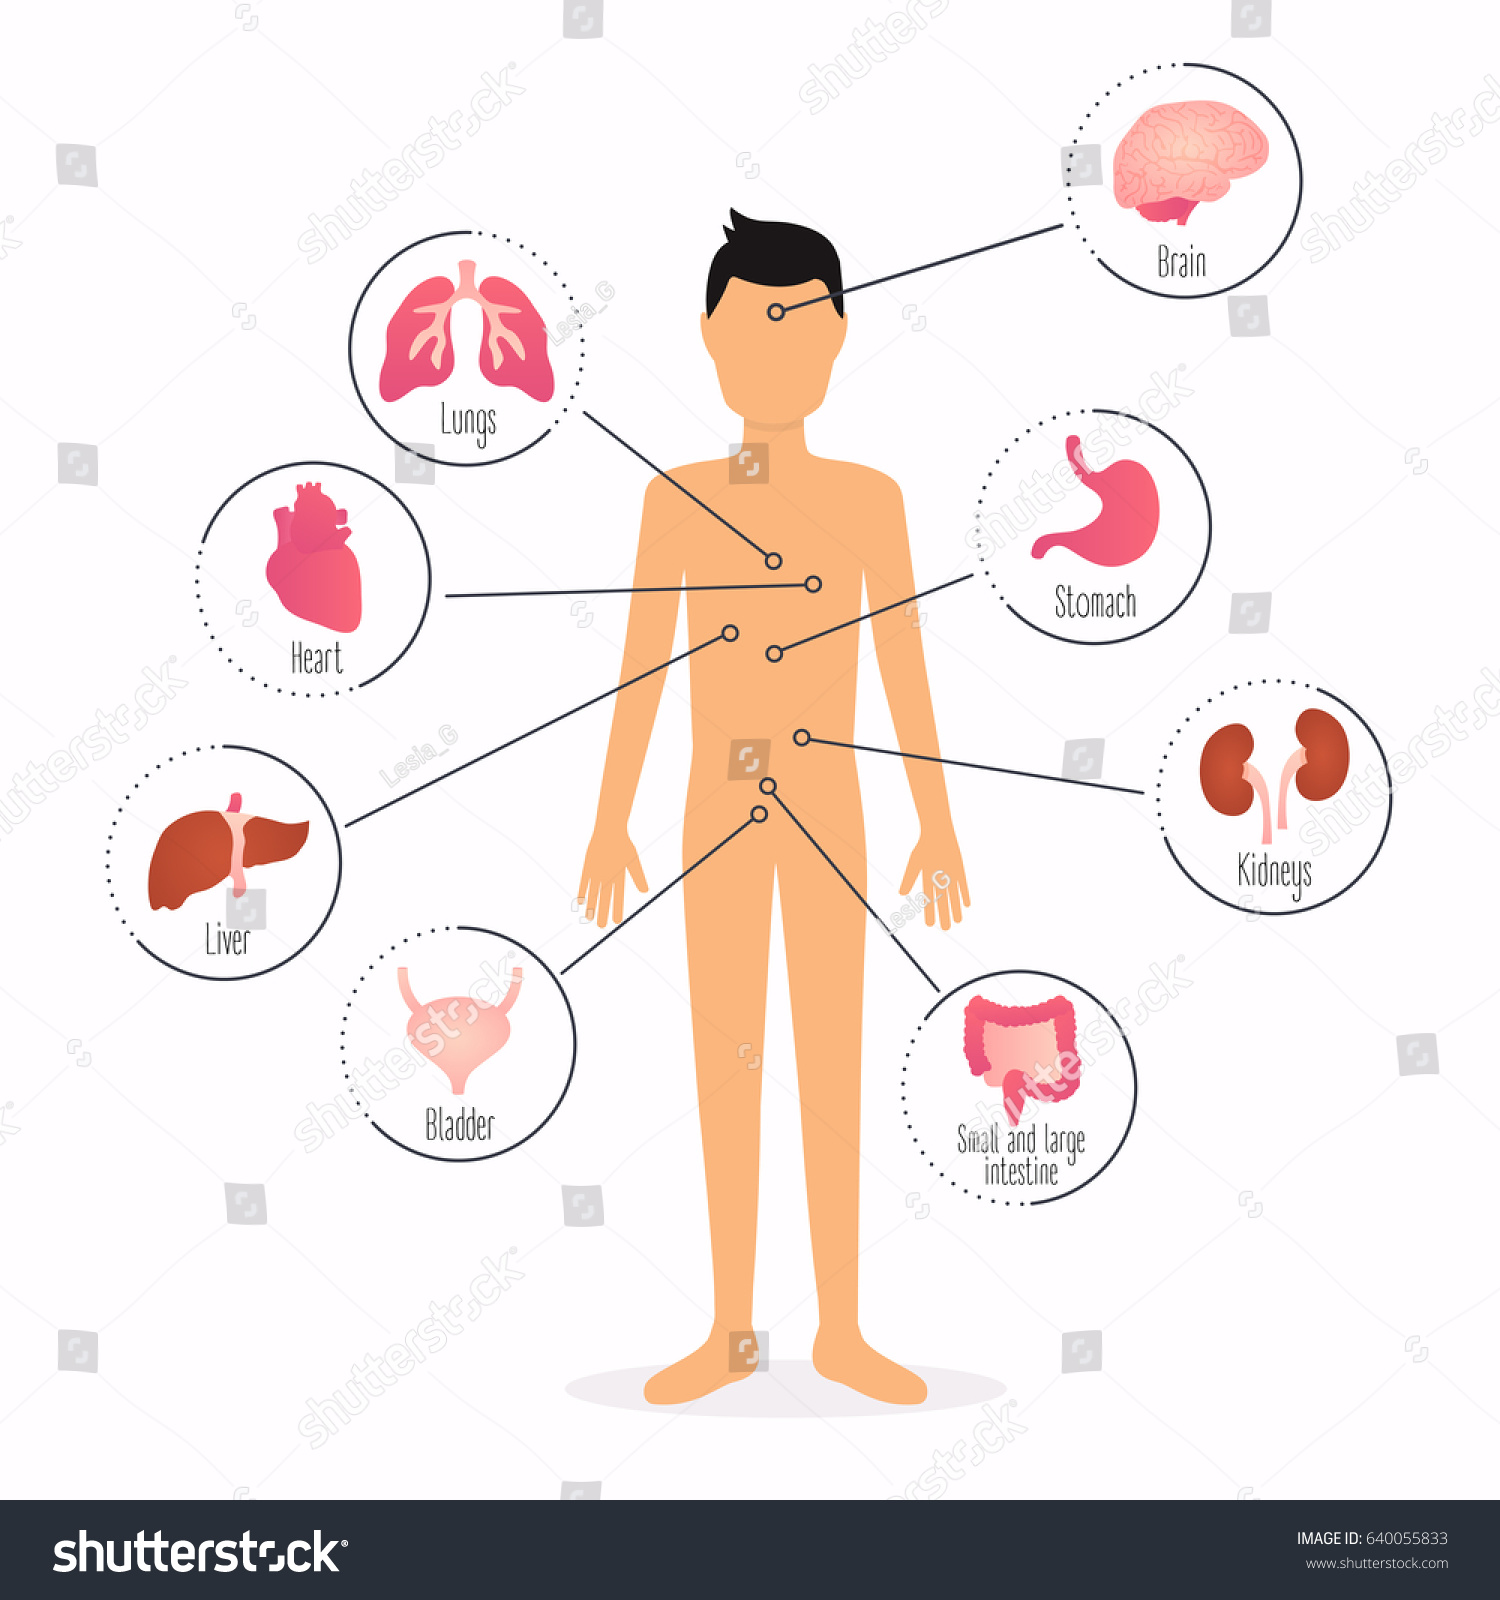 Human Body Internal Organs Human Body Stock Vector 640055833 ...